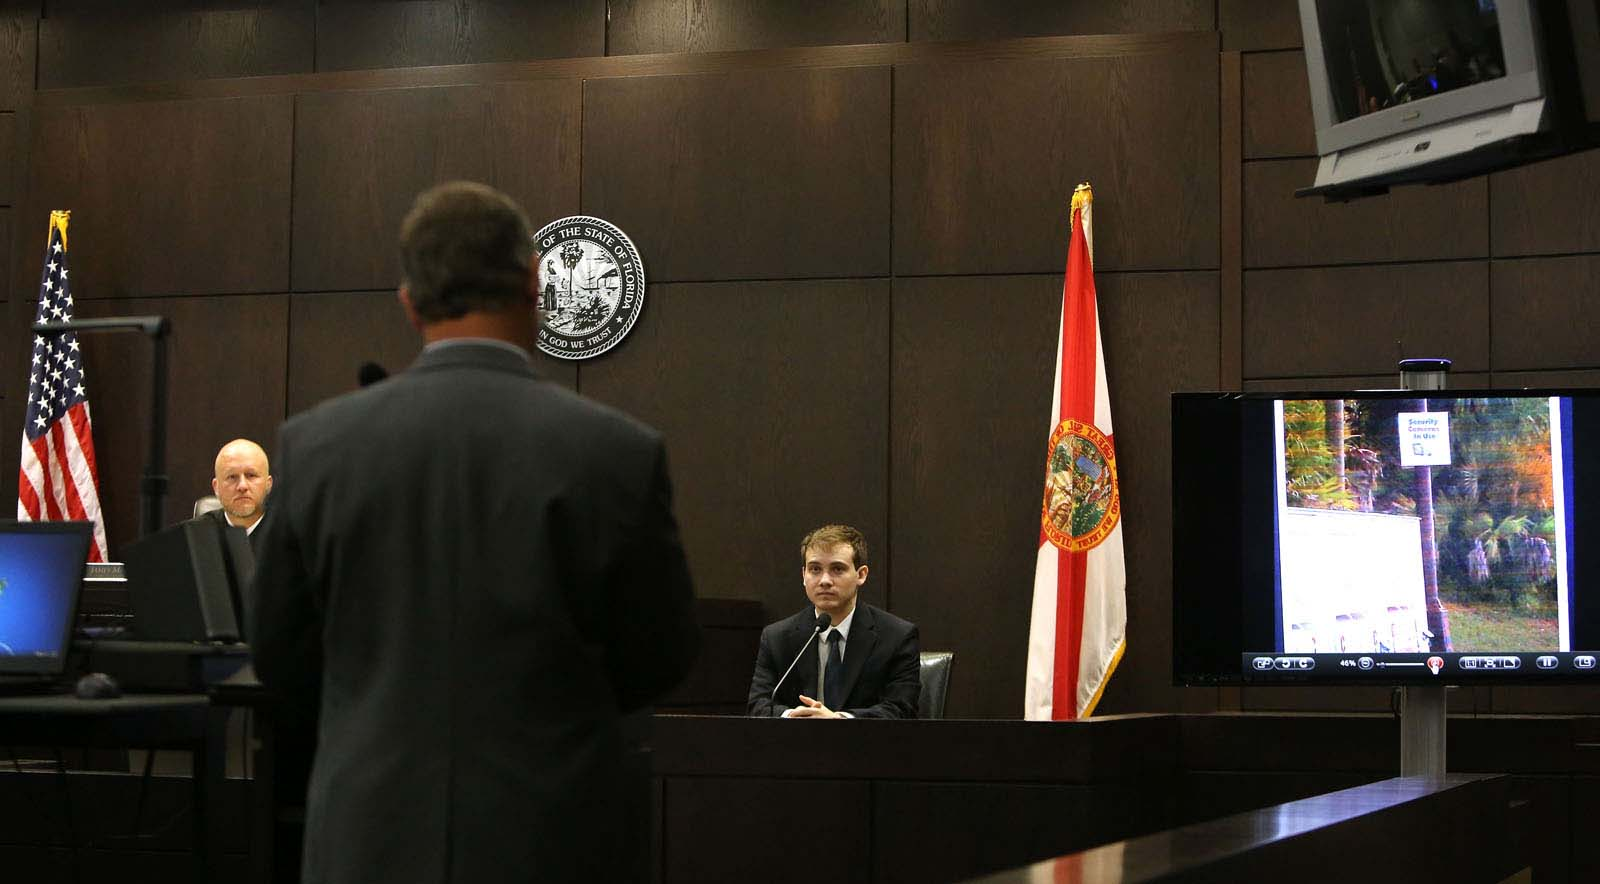 Pedro Bravo testifies before defense attorney Michael Ruppert during Bravo's murder trial in courtroom 1B of the Alachua County Criminal Justice Center Thursday, August 14, 2014.  Bravo is accused of killing University of Florida student Christian Aguilar.  (Doug Finger/The Gainesville Sun/Pool)